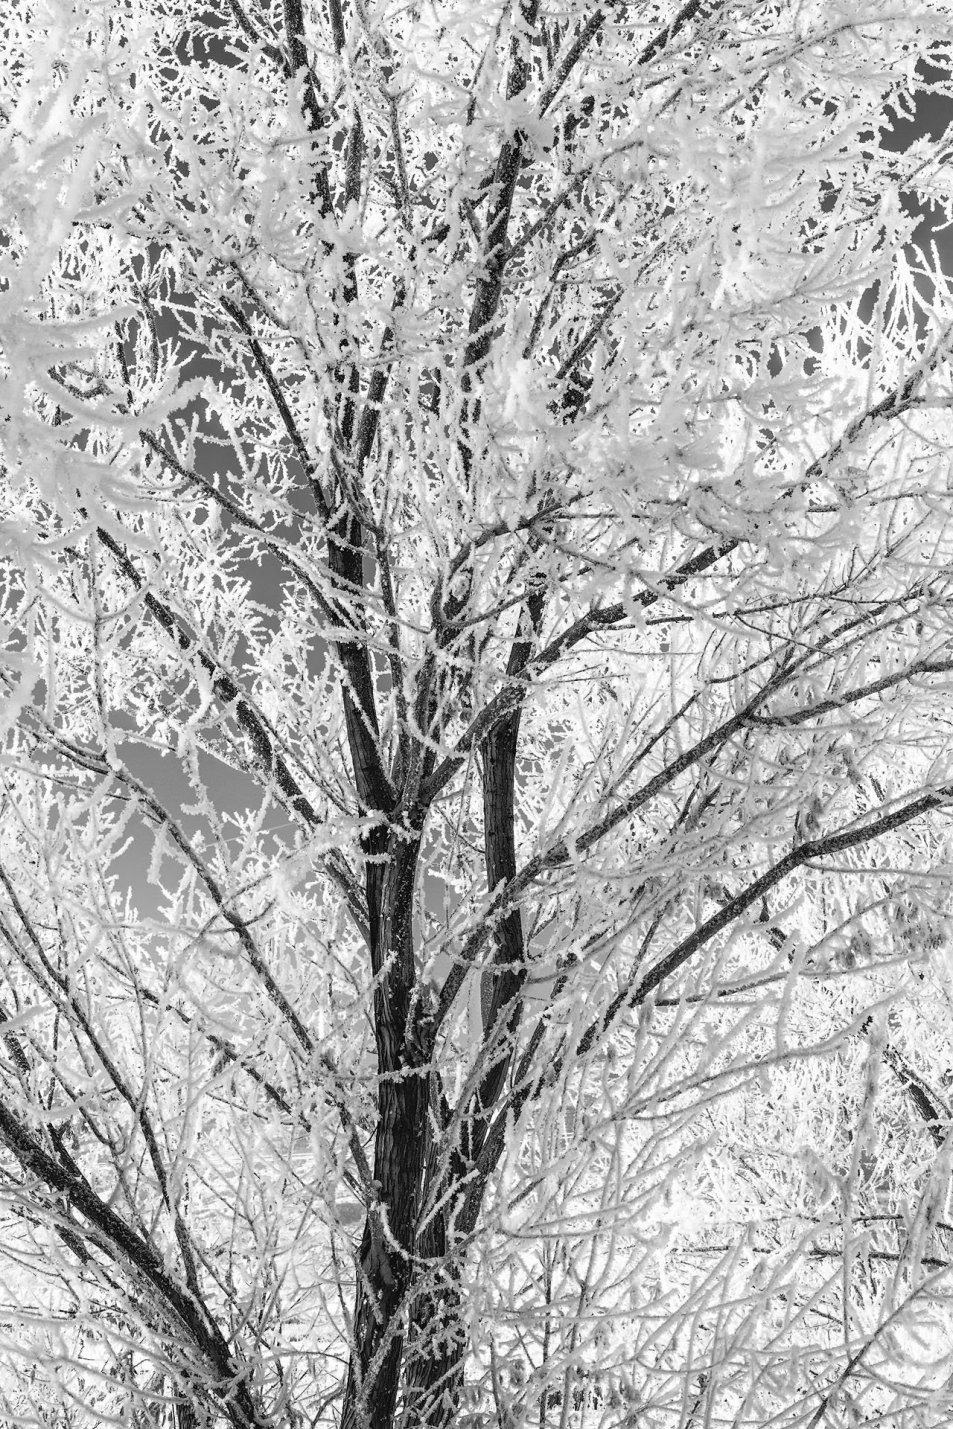 Winter's Grip Monochrome Vertical - Utah Fine Art Nature Photography